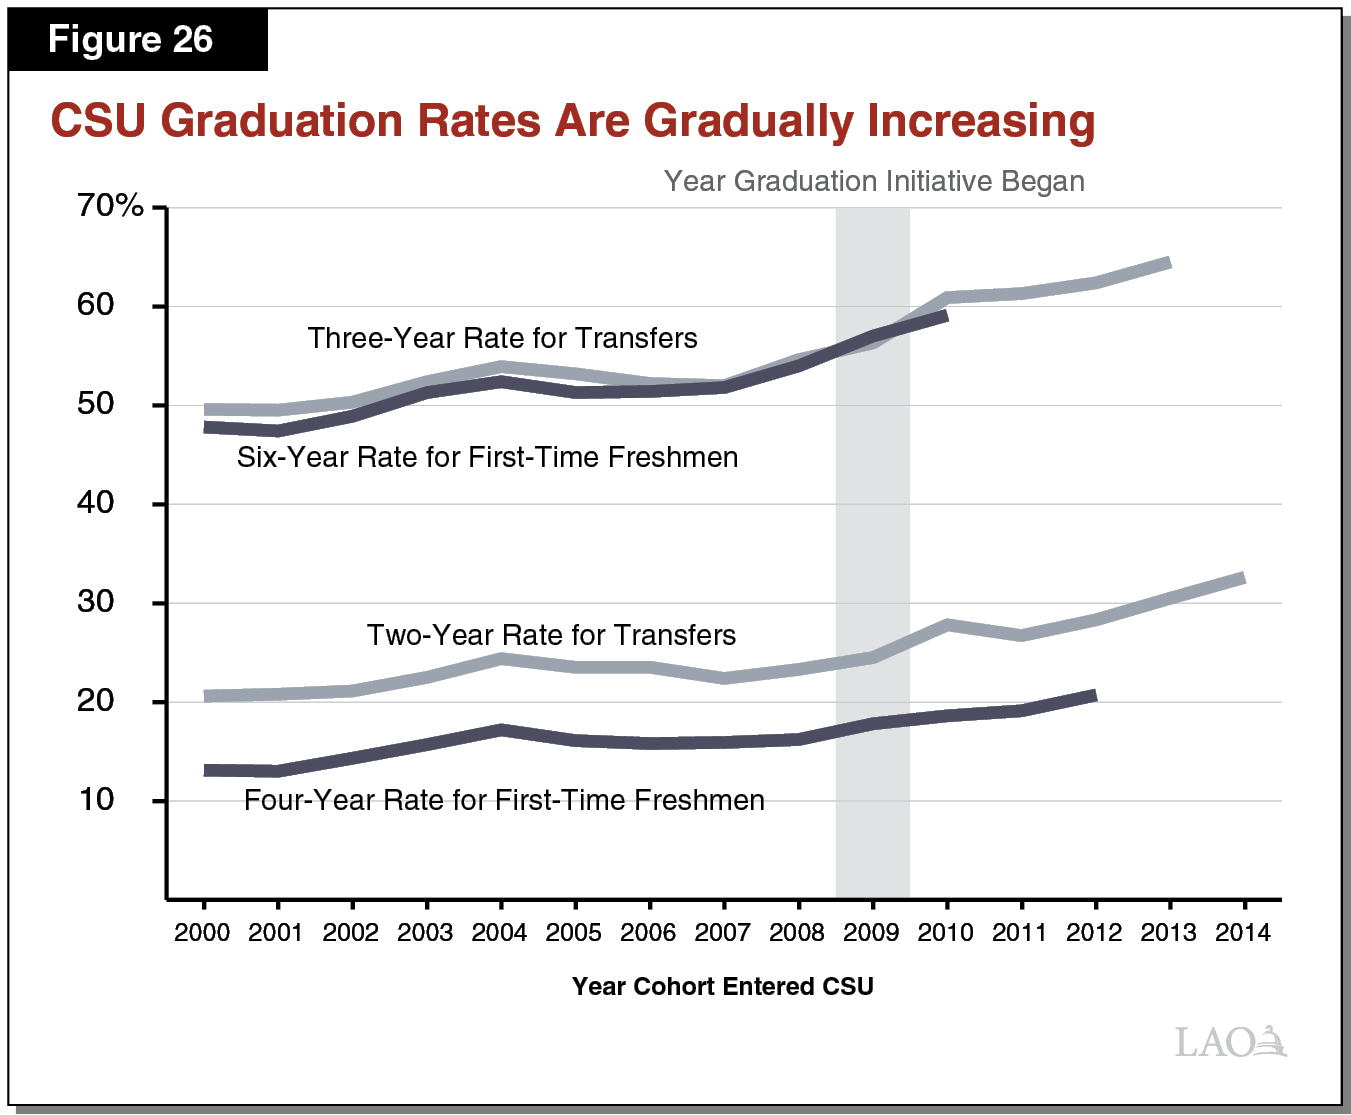 Figure 26 - CSU Graduation Rates are Gradualy Increasing